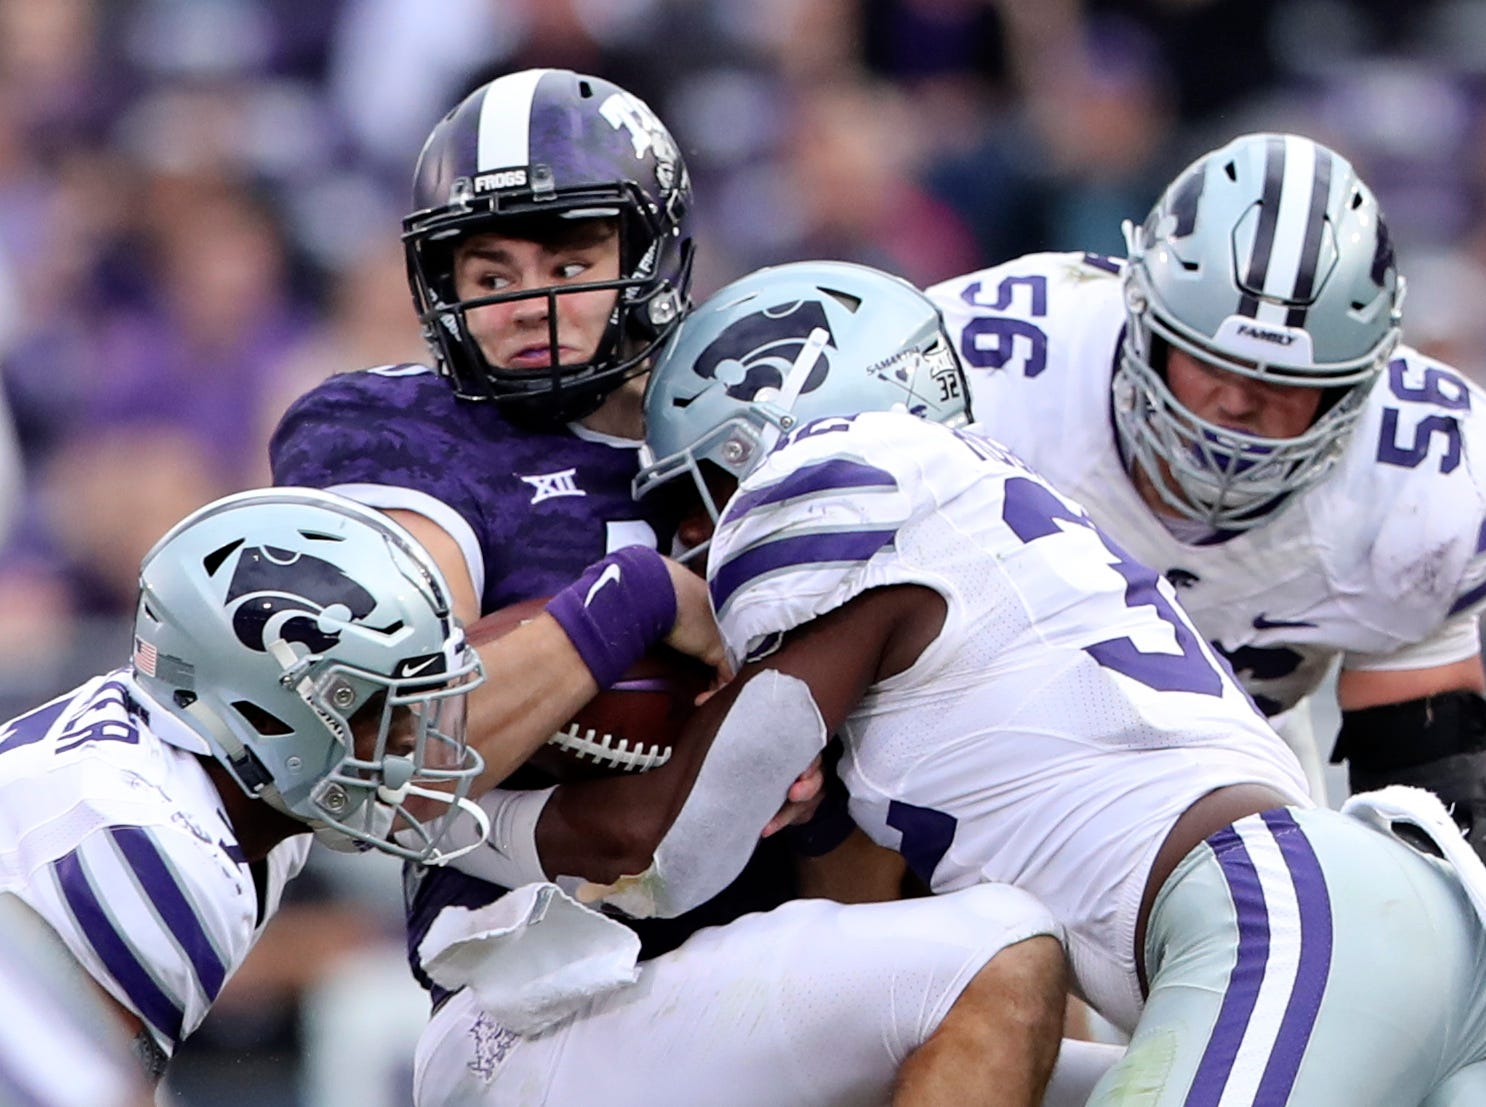 TCU Horned Frogs quarterback Michael Collins (10) is tackled by Kansas State Wildcats linebacker Justin Hughes (32) and defensive end Wyatt Hubert (56) during the second half at Amon G. Carter Stadium.